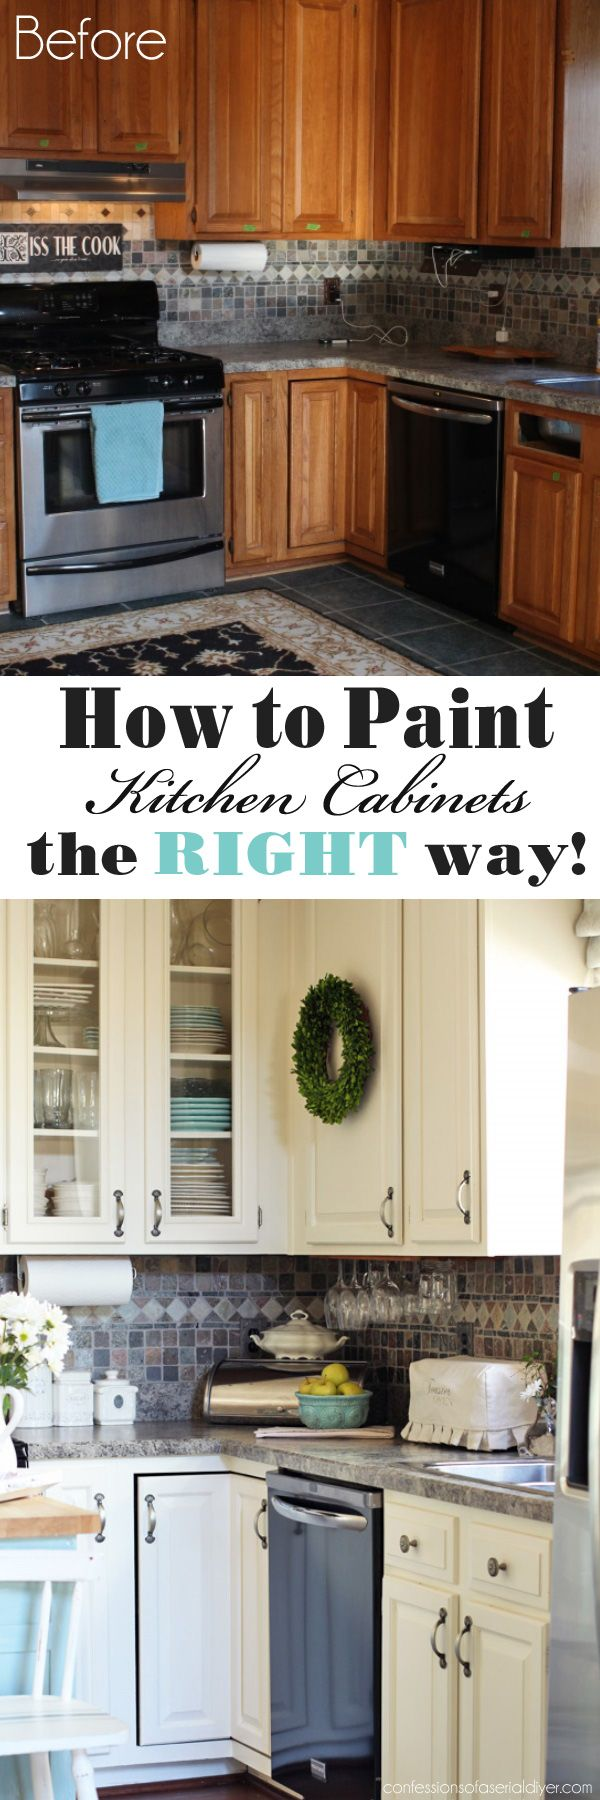 Ideas For Kitchen Cabinets Makeover top 25+ best diy kitchen cabinets ideas on pinterest | diy kitchen